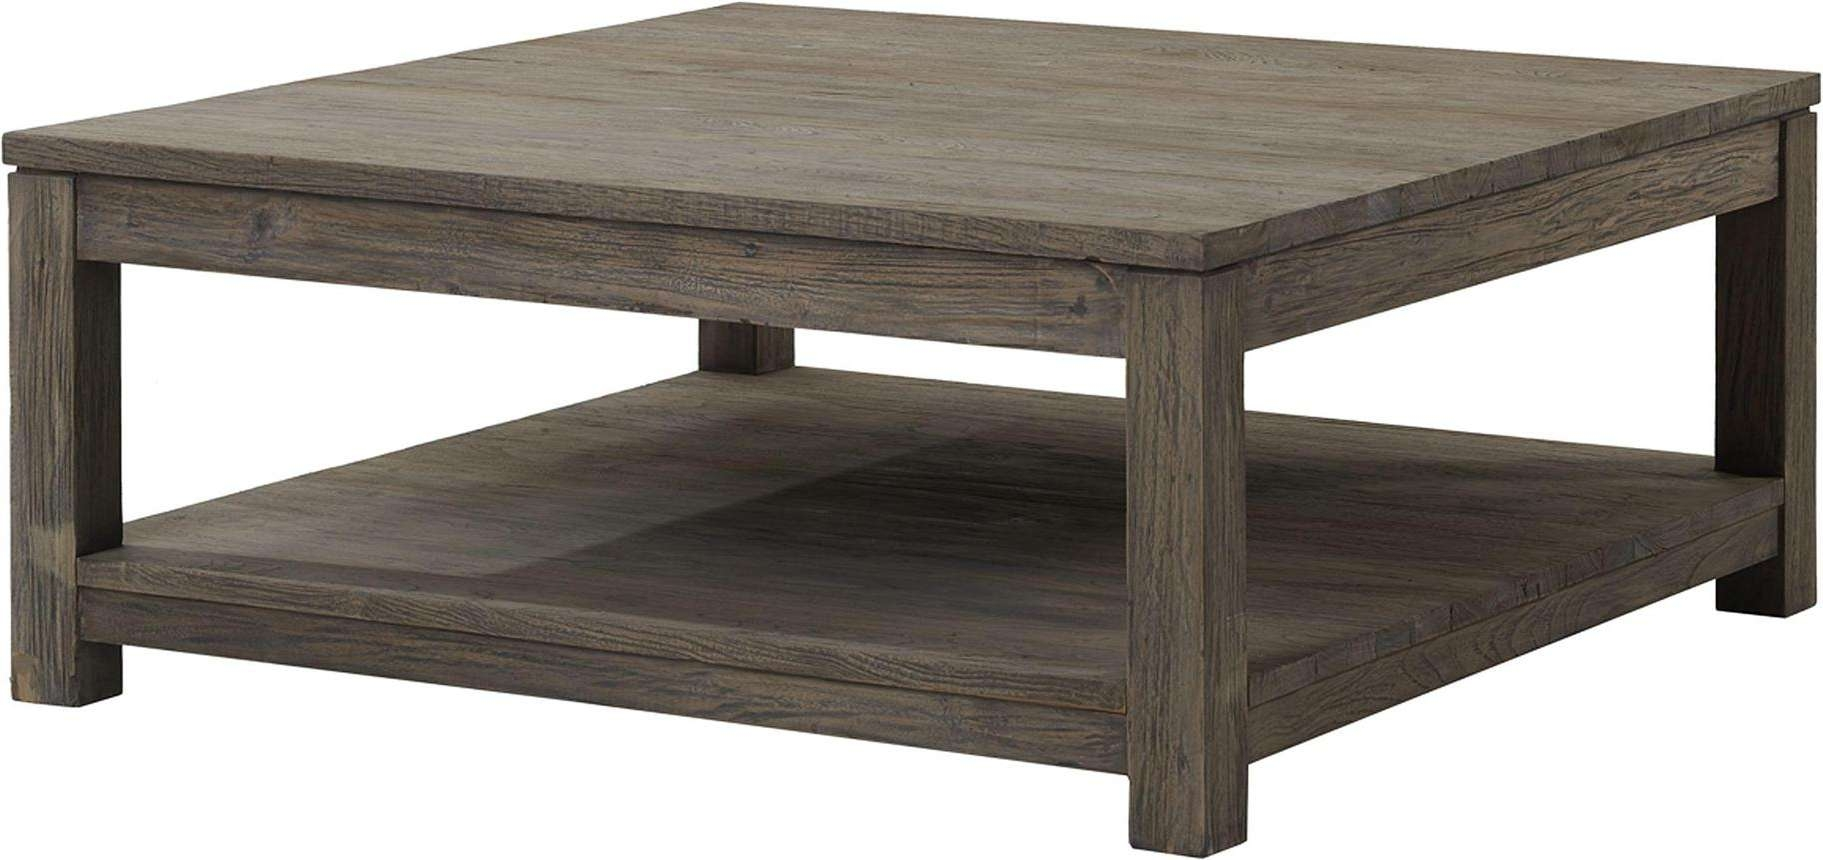 Large Square Coffee Table Increasing Interior Elegance Ruchi Designs Inside 2017 Tables